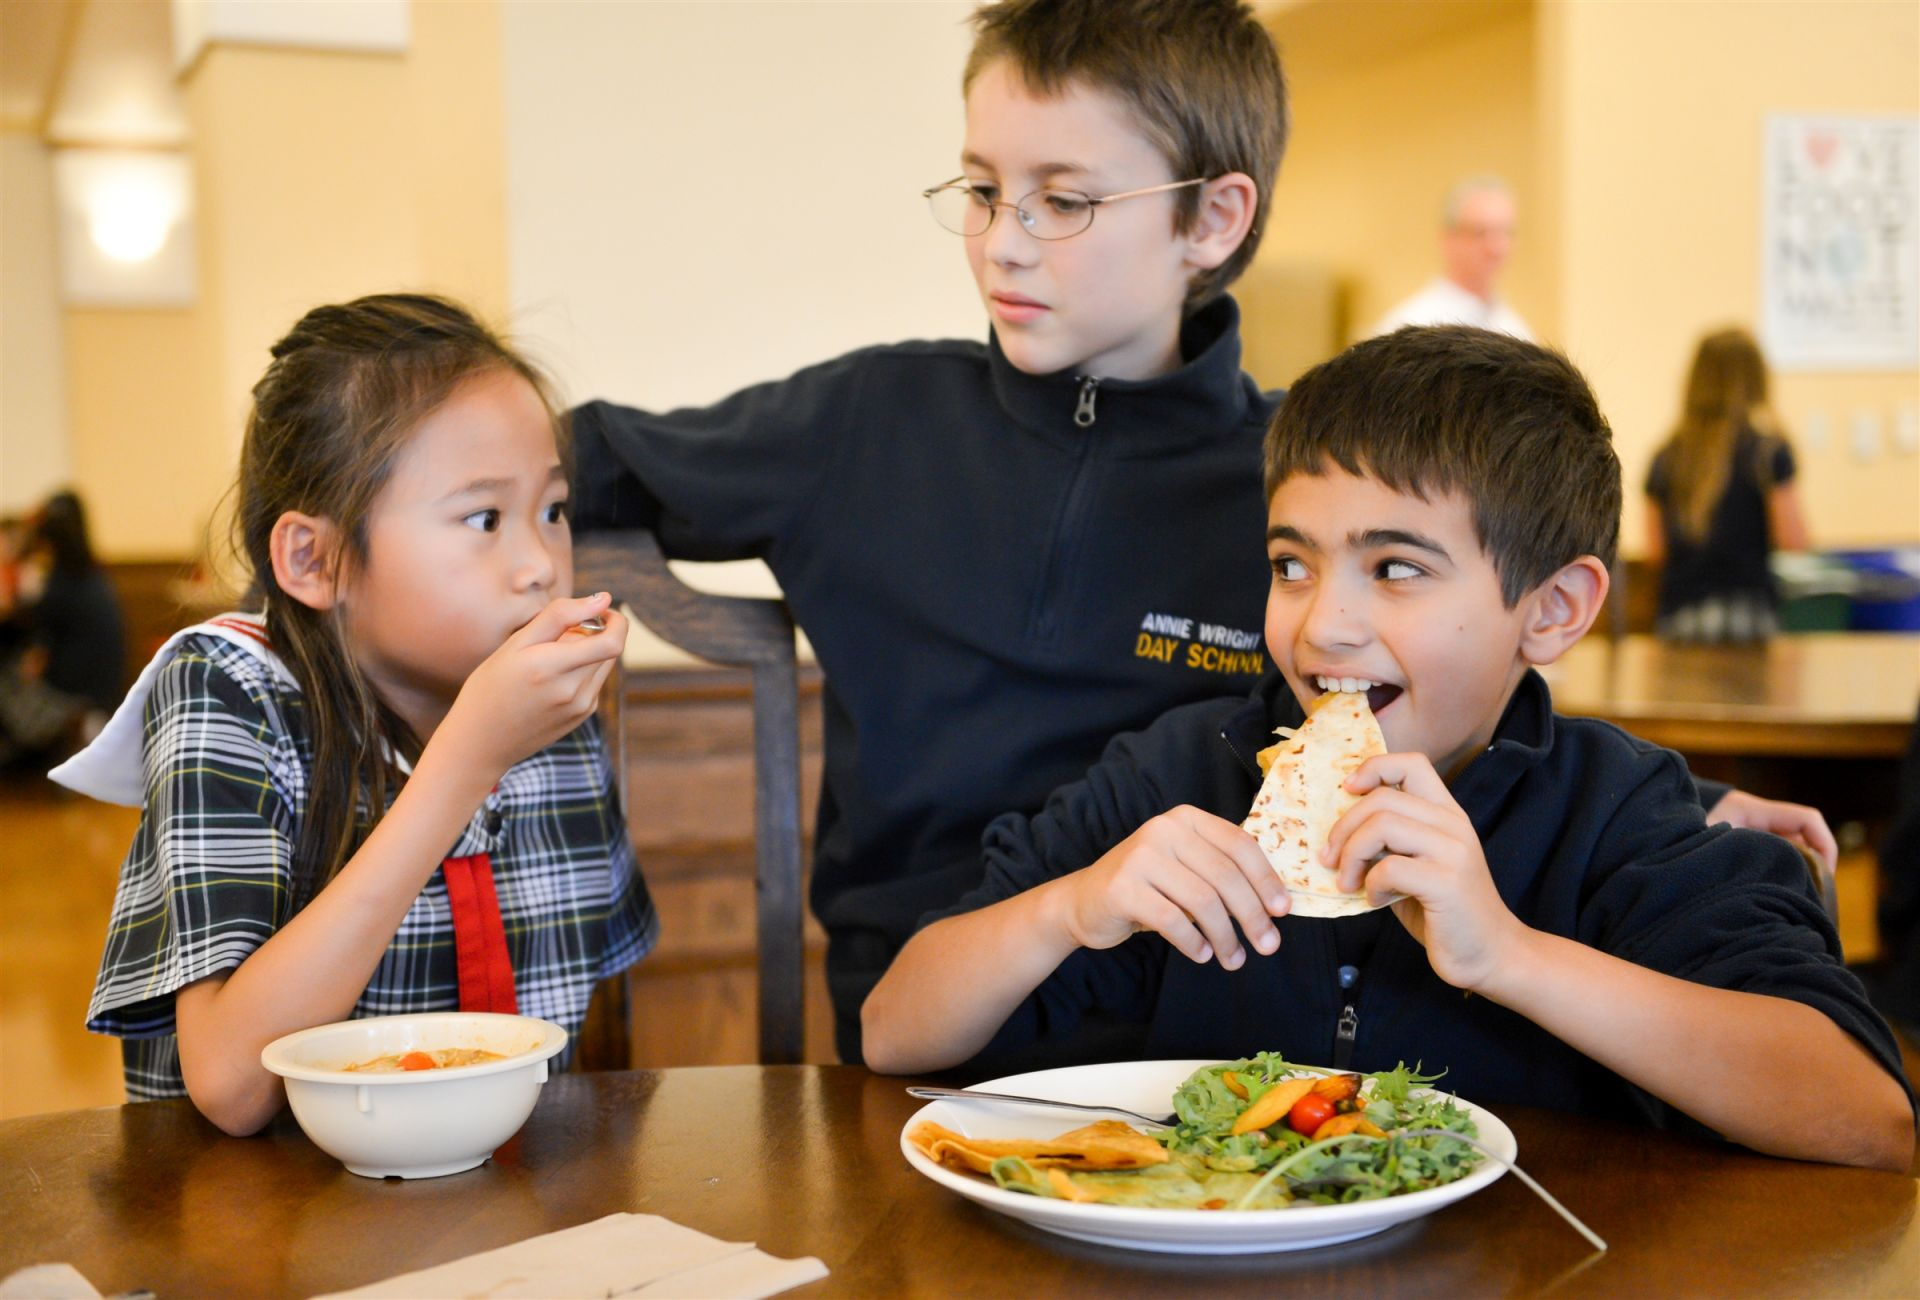 Students can choose from a range of options for lunch.